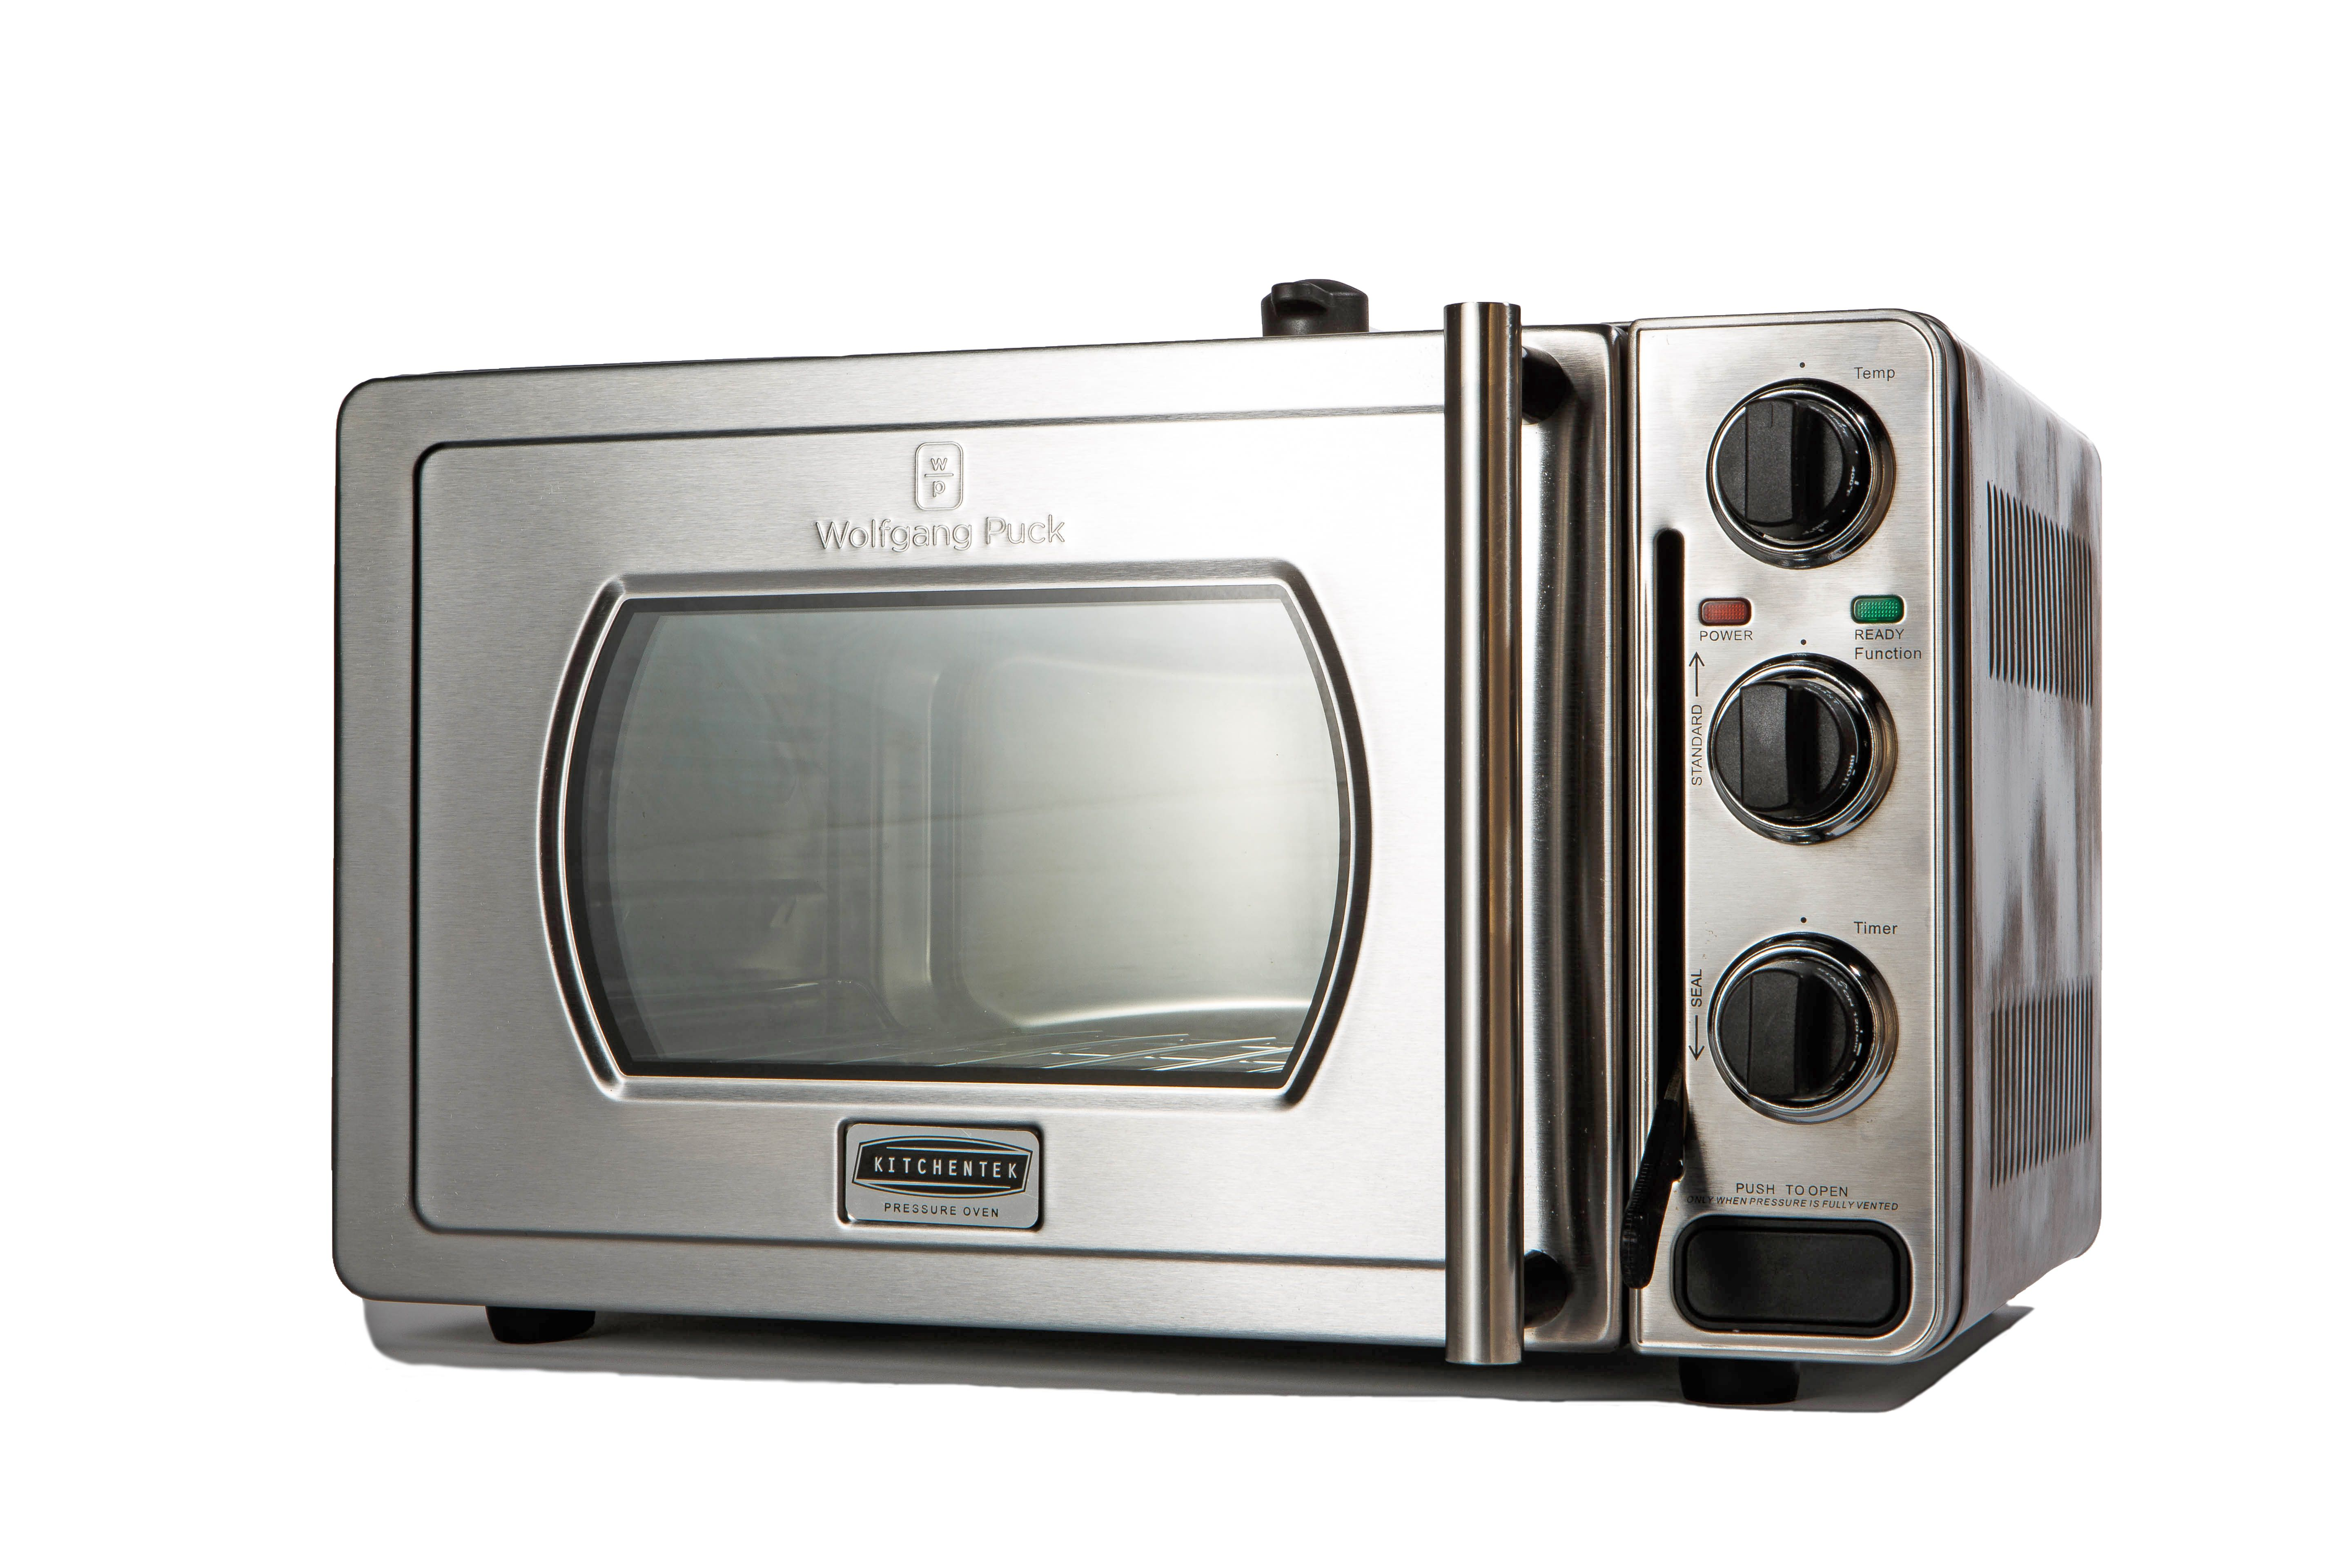 ... Ovens > See more Wolfgang Puck Pressure Oven Essential 22L Stai